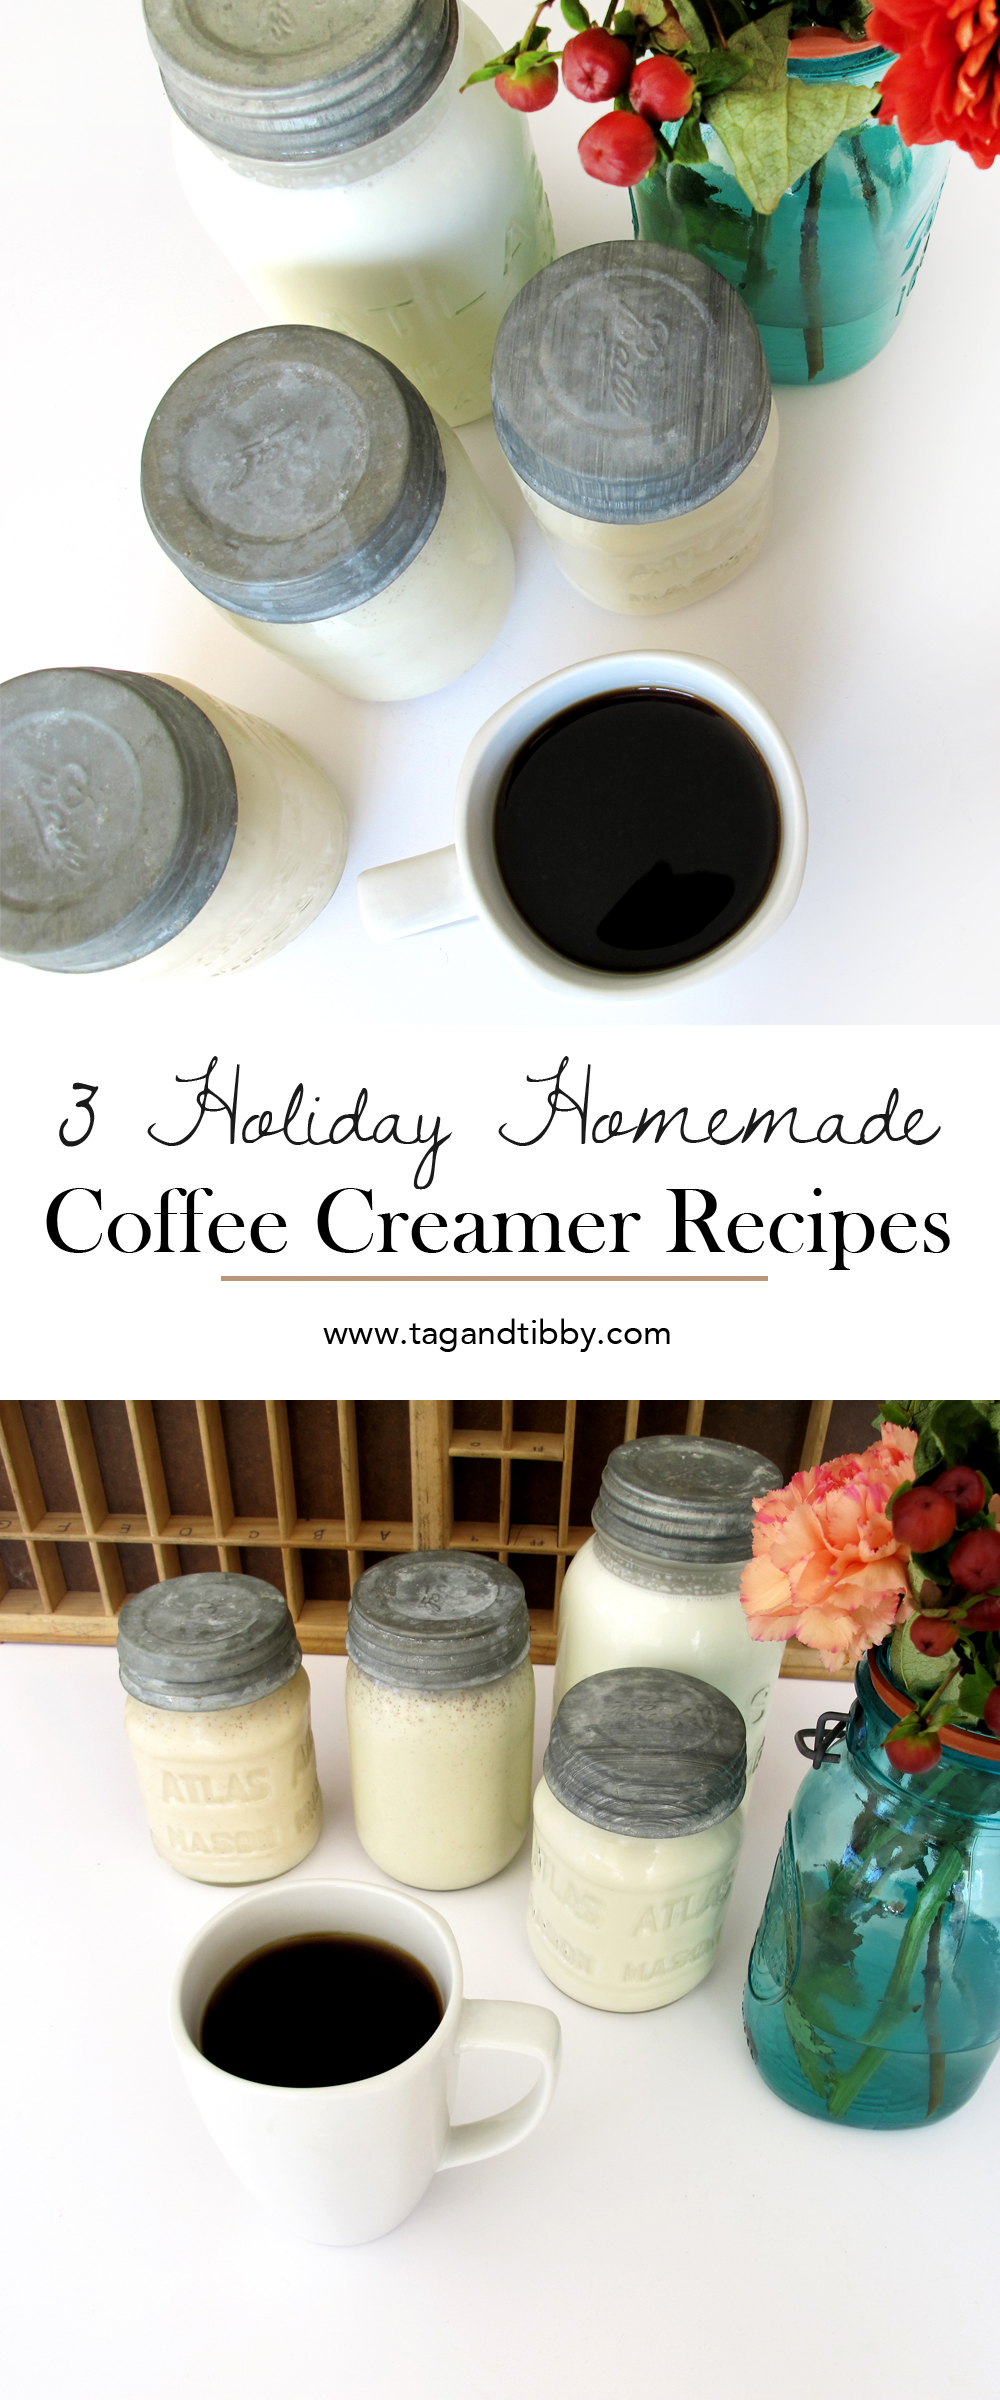 3 homemade holiday coffee creamer recipes: gingerbread, pumpkin spice, and french vanilla